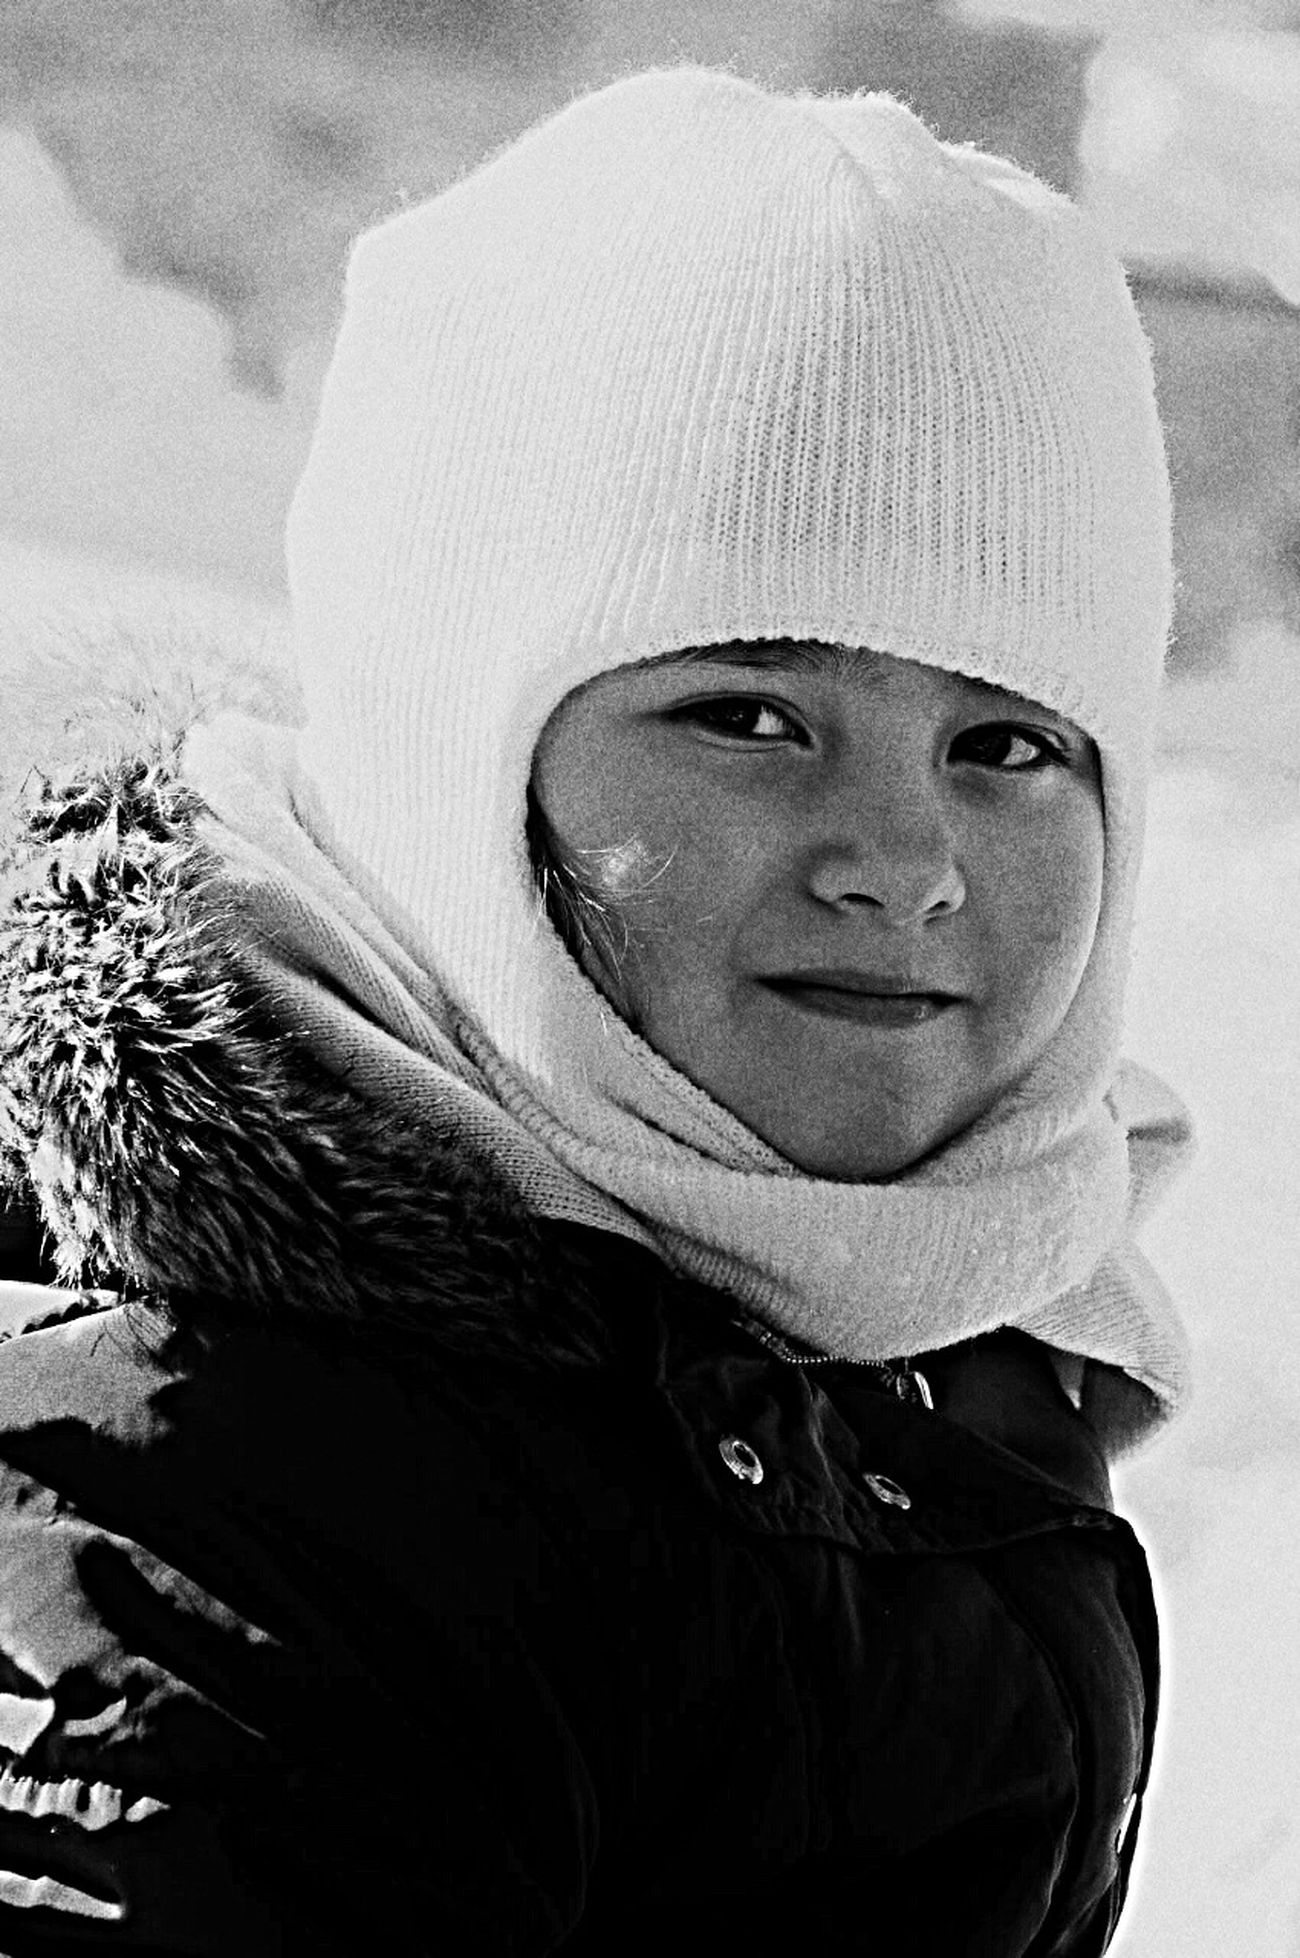 Littlesister Sister ❤ Kids Bursa / Turkey Love ♥ Snow Blackandwhite Black And White First Eyeem Photo